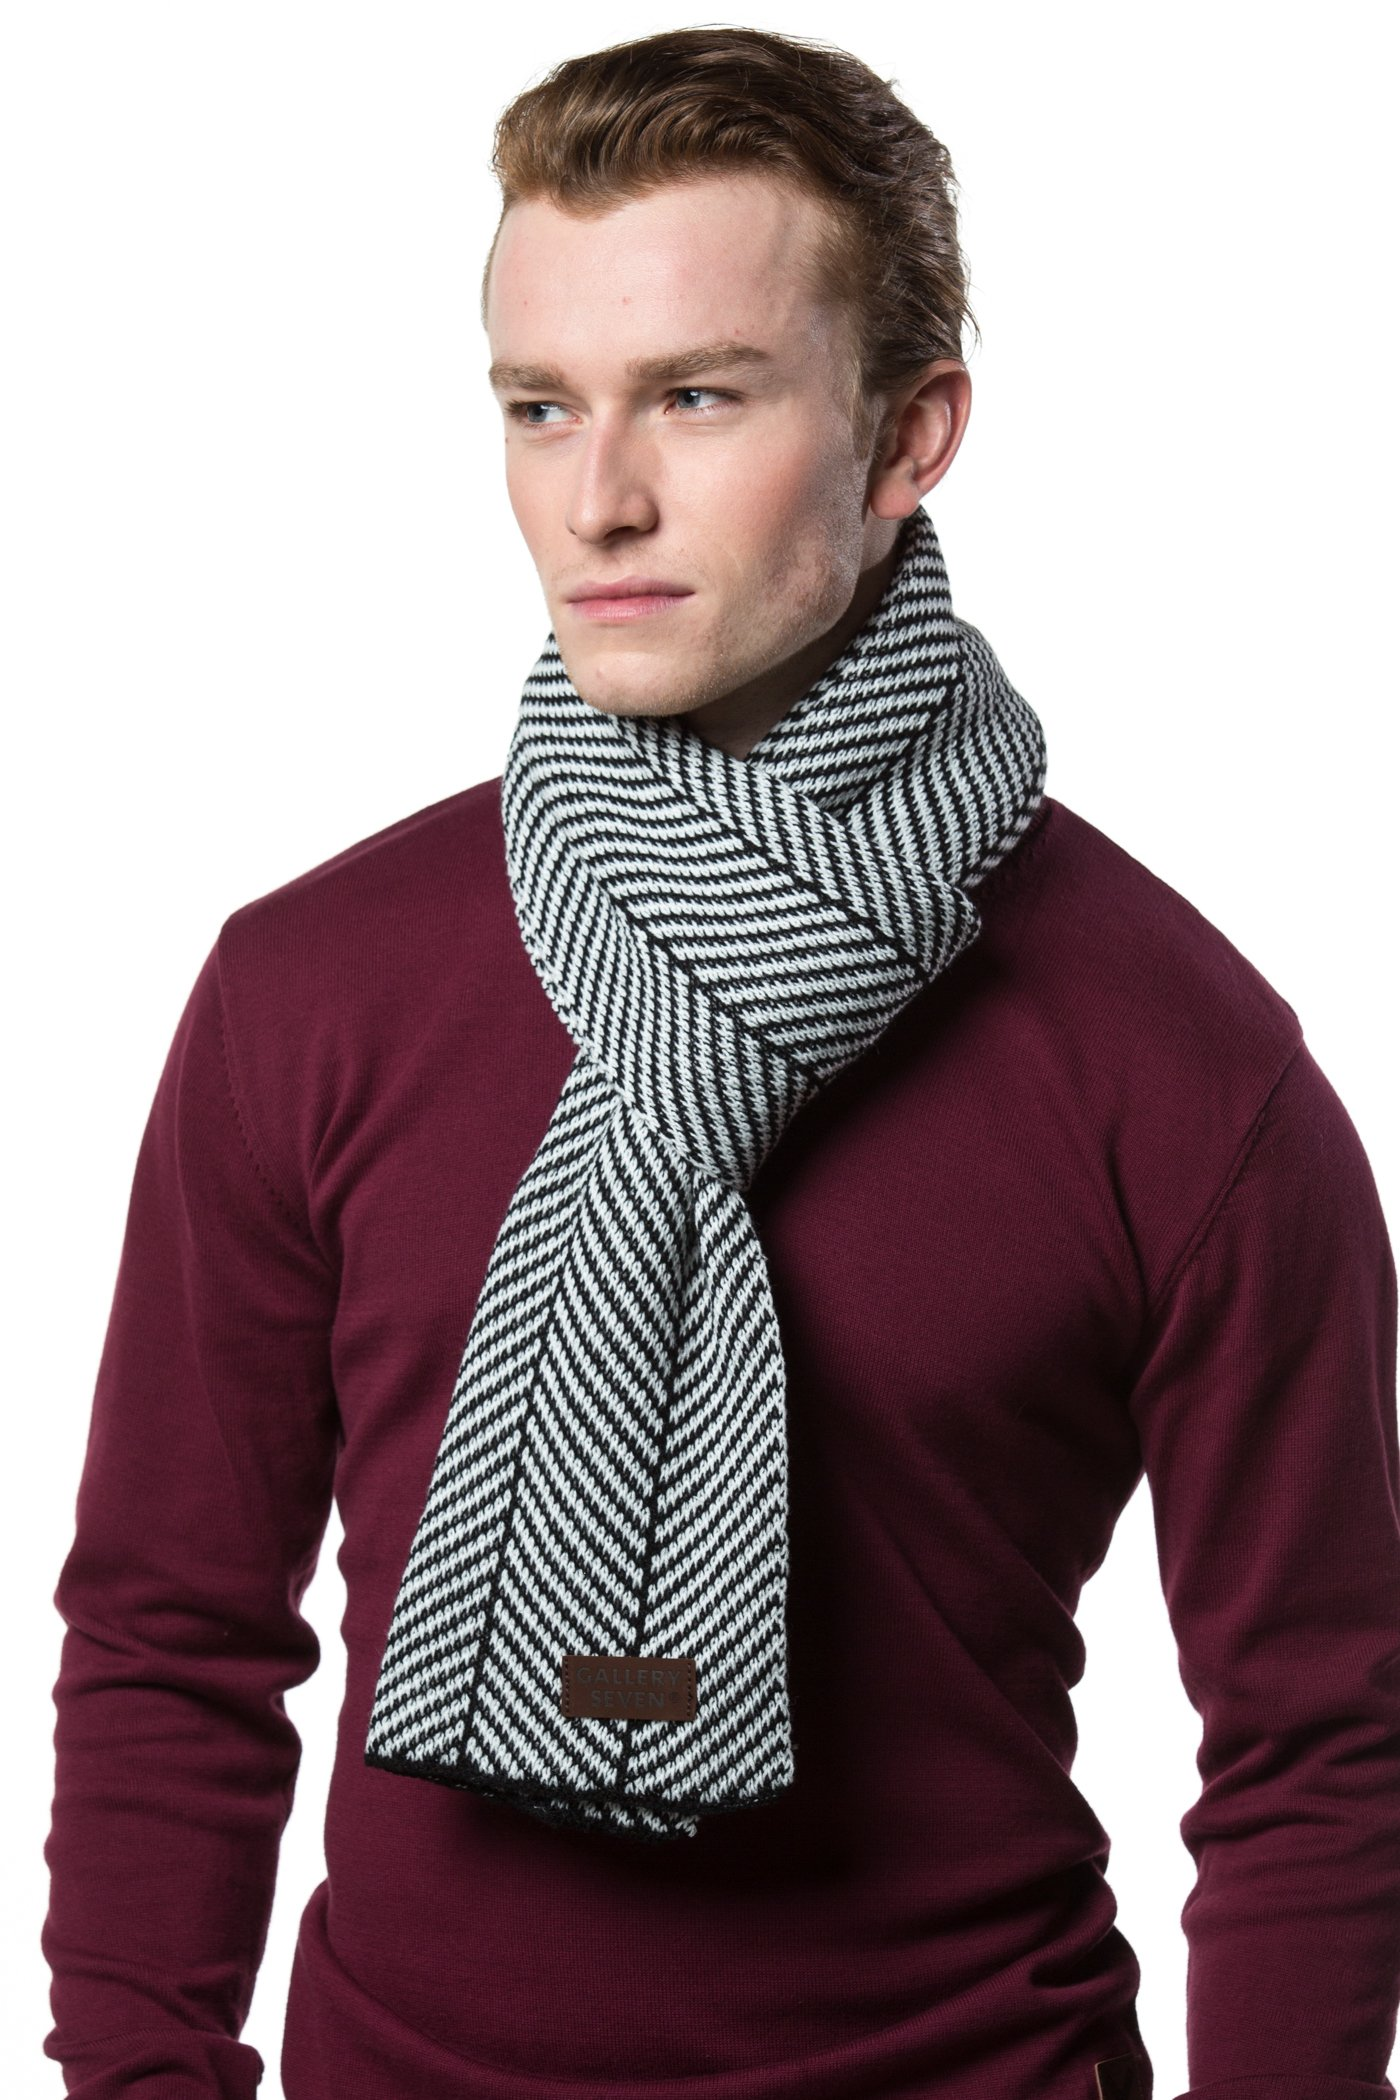 Gallery Seven Winter Scarf for Men, Soft Knit Scarve, in an Elegant Gift Box - Black/White